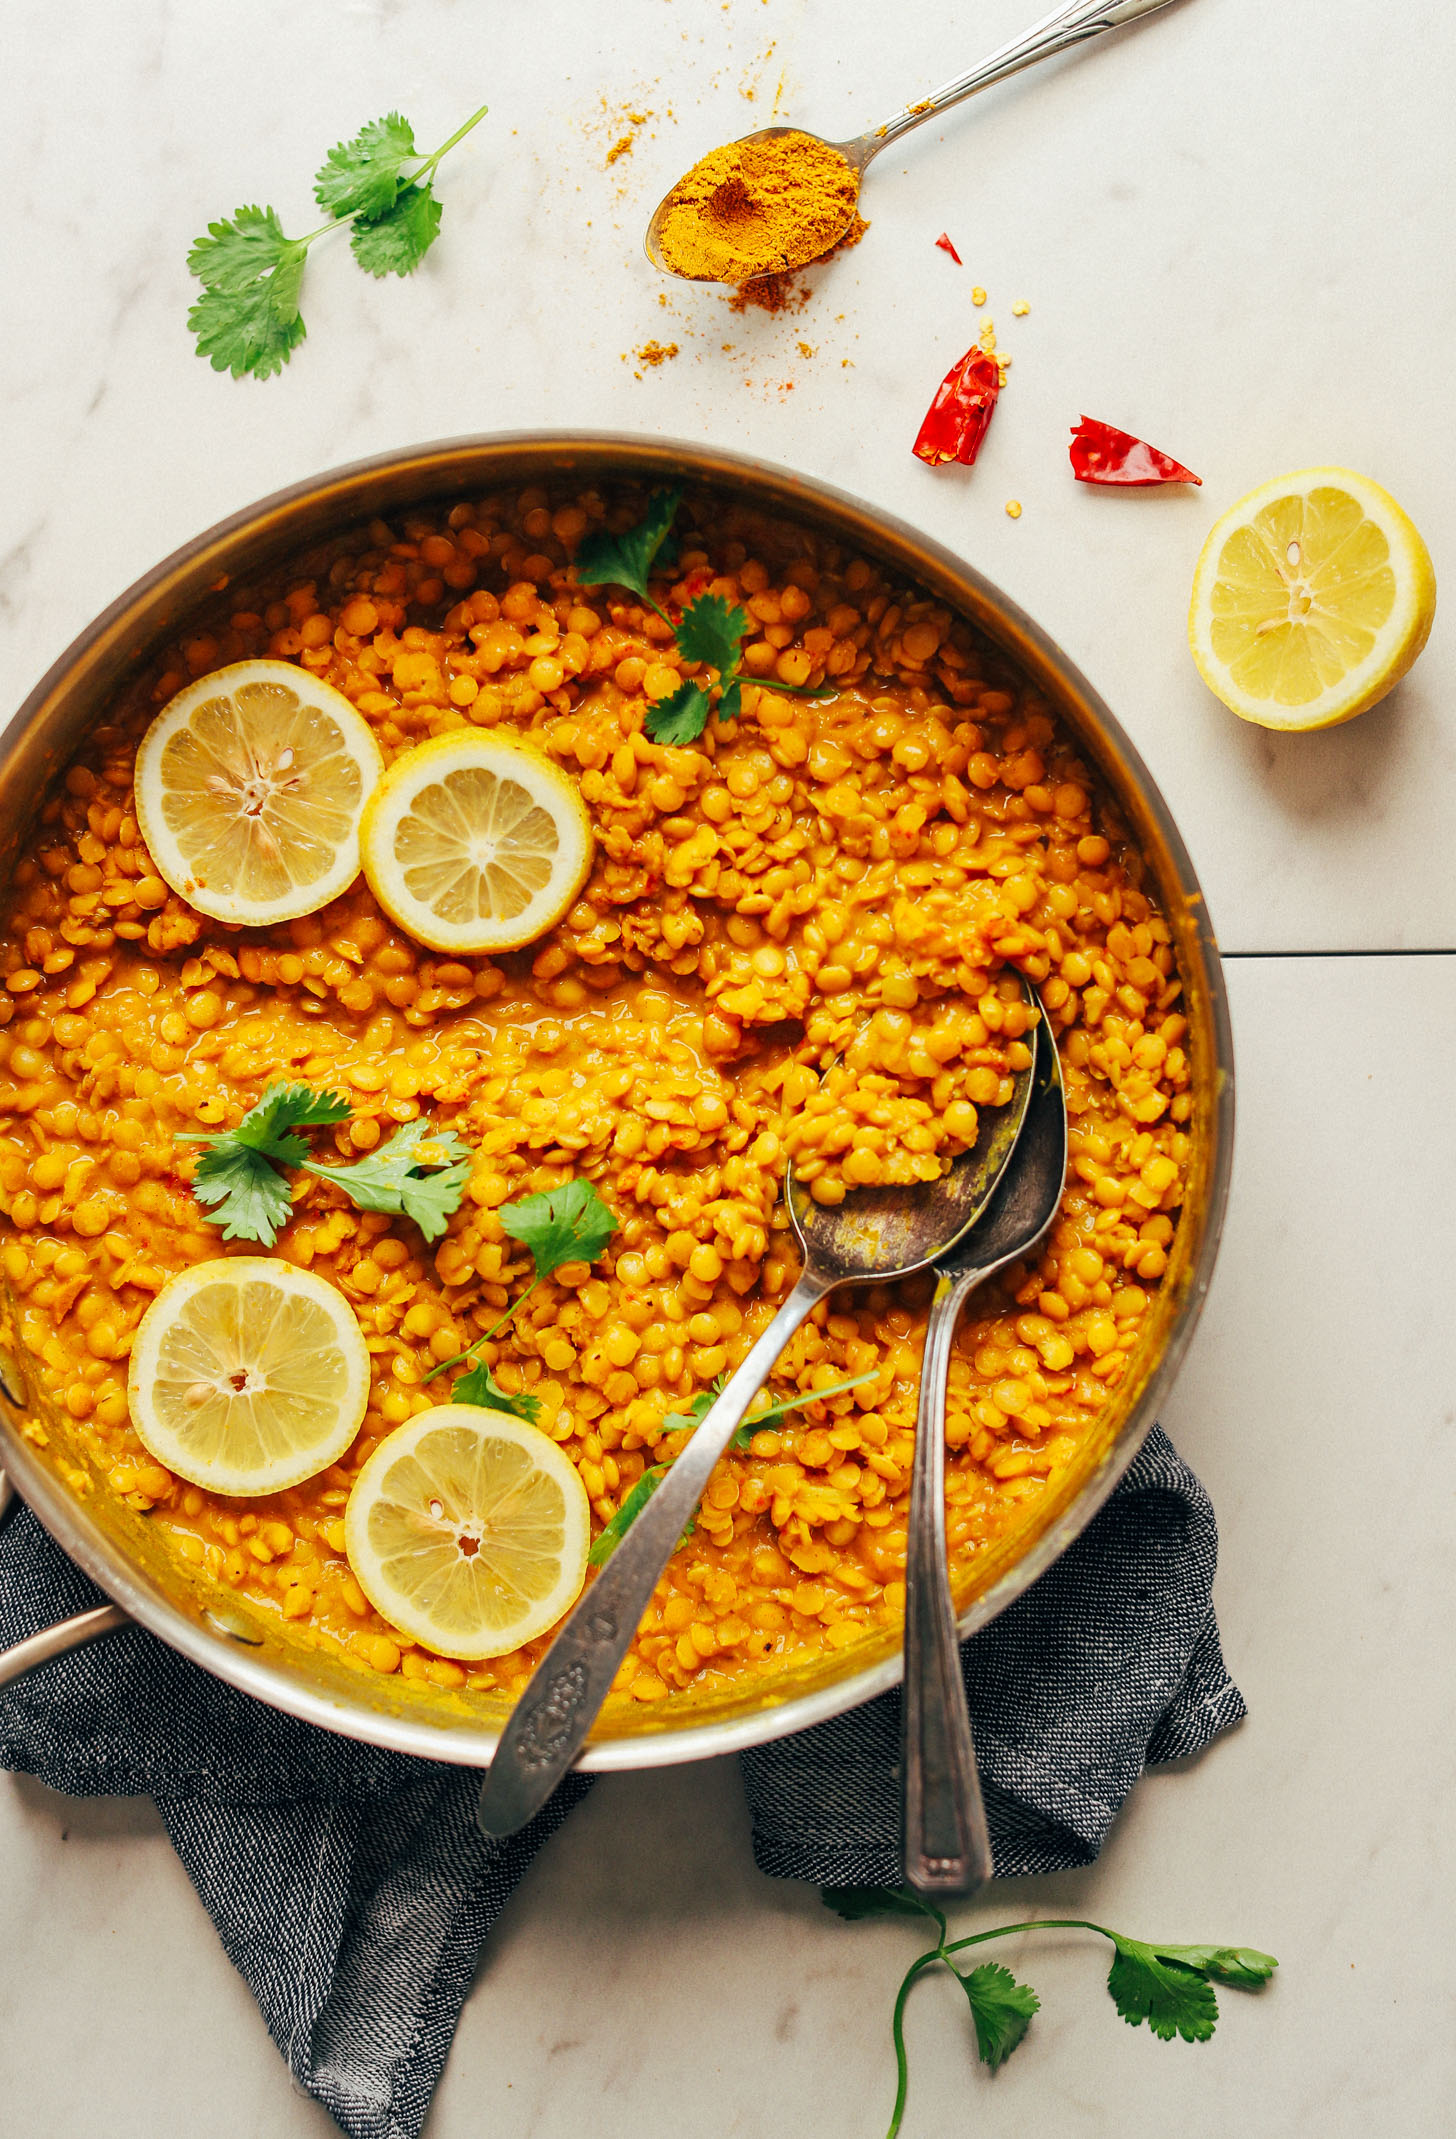 Large pan of vegan gluten-free Coconut Curried Golden Lentils with fresh lemon slices